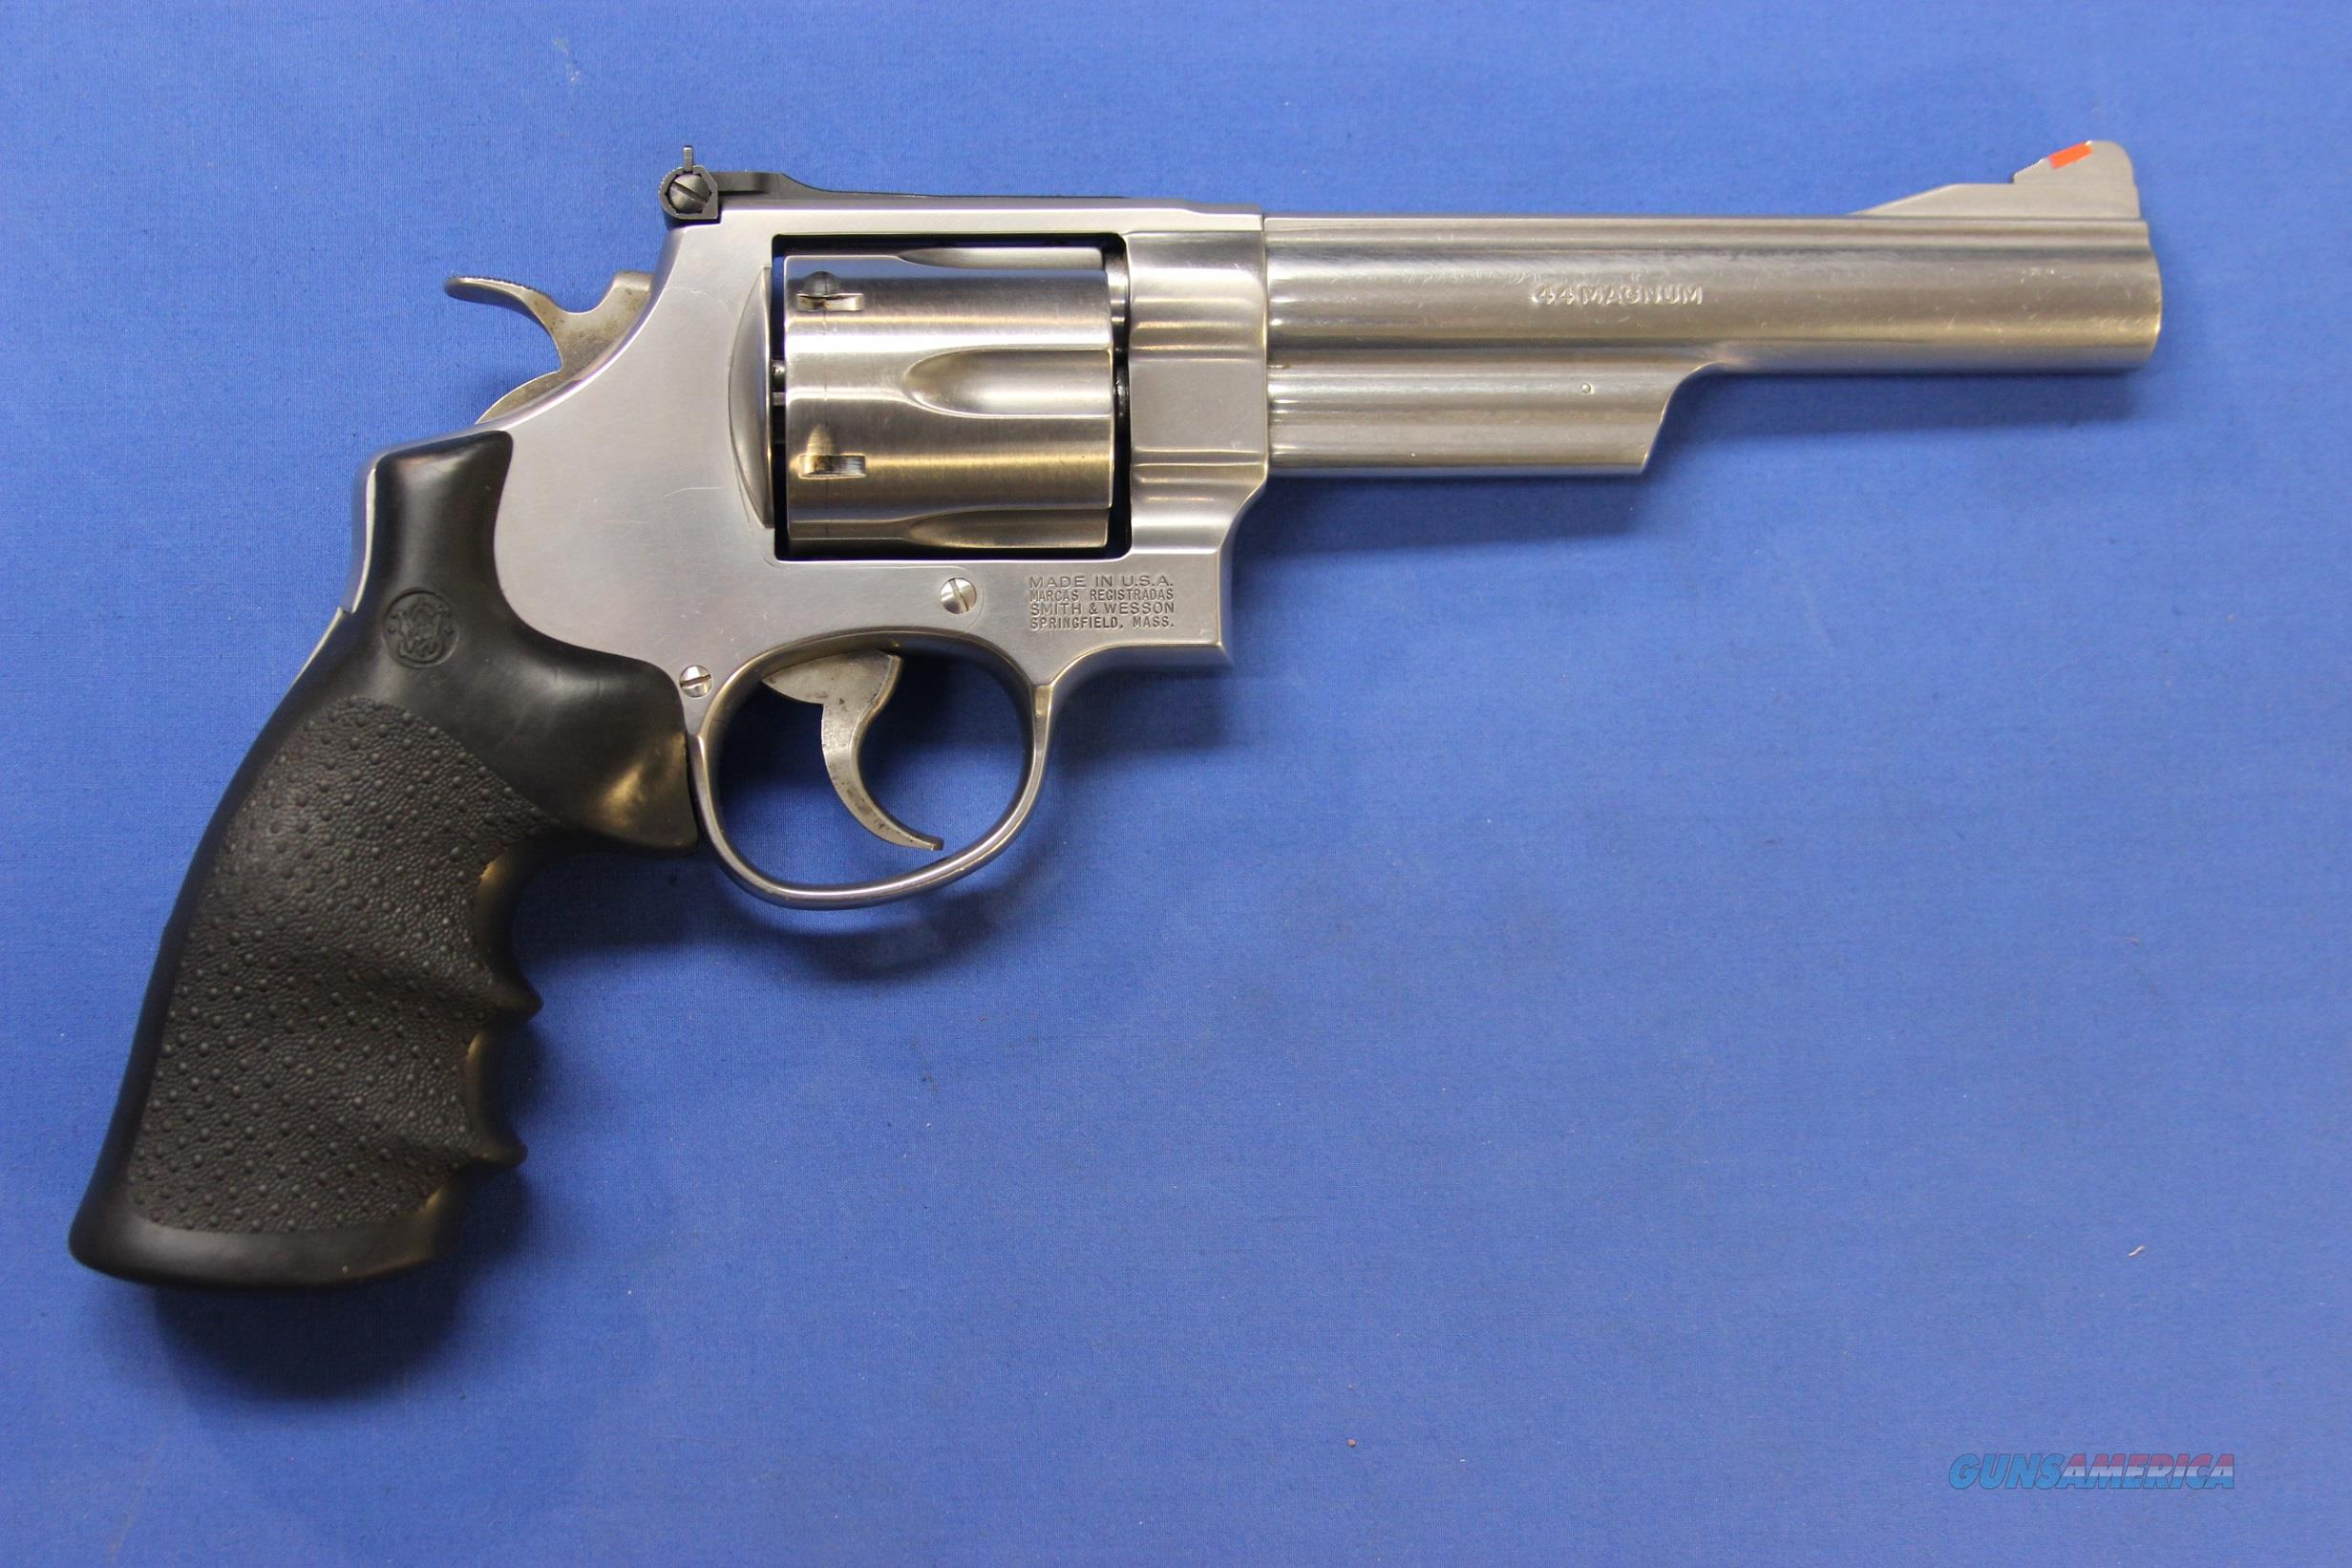 SMITH & WESSON 629-5 STAINLESS .44 MAGNUM w/BOX  Guns > Pistols > Smith & Wesson Revolvers > Model 629